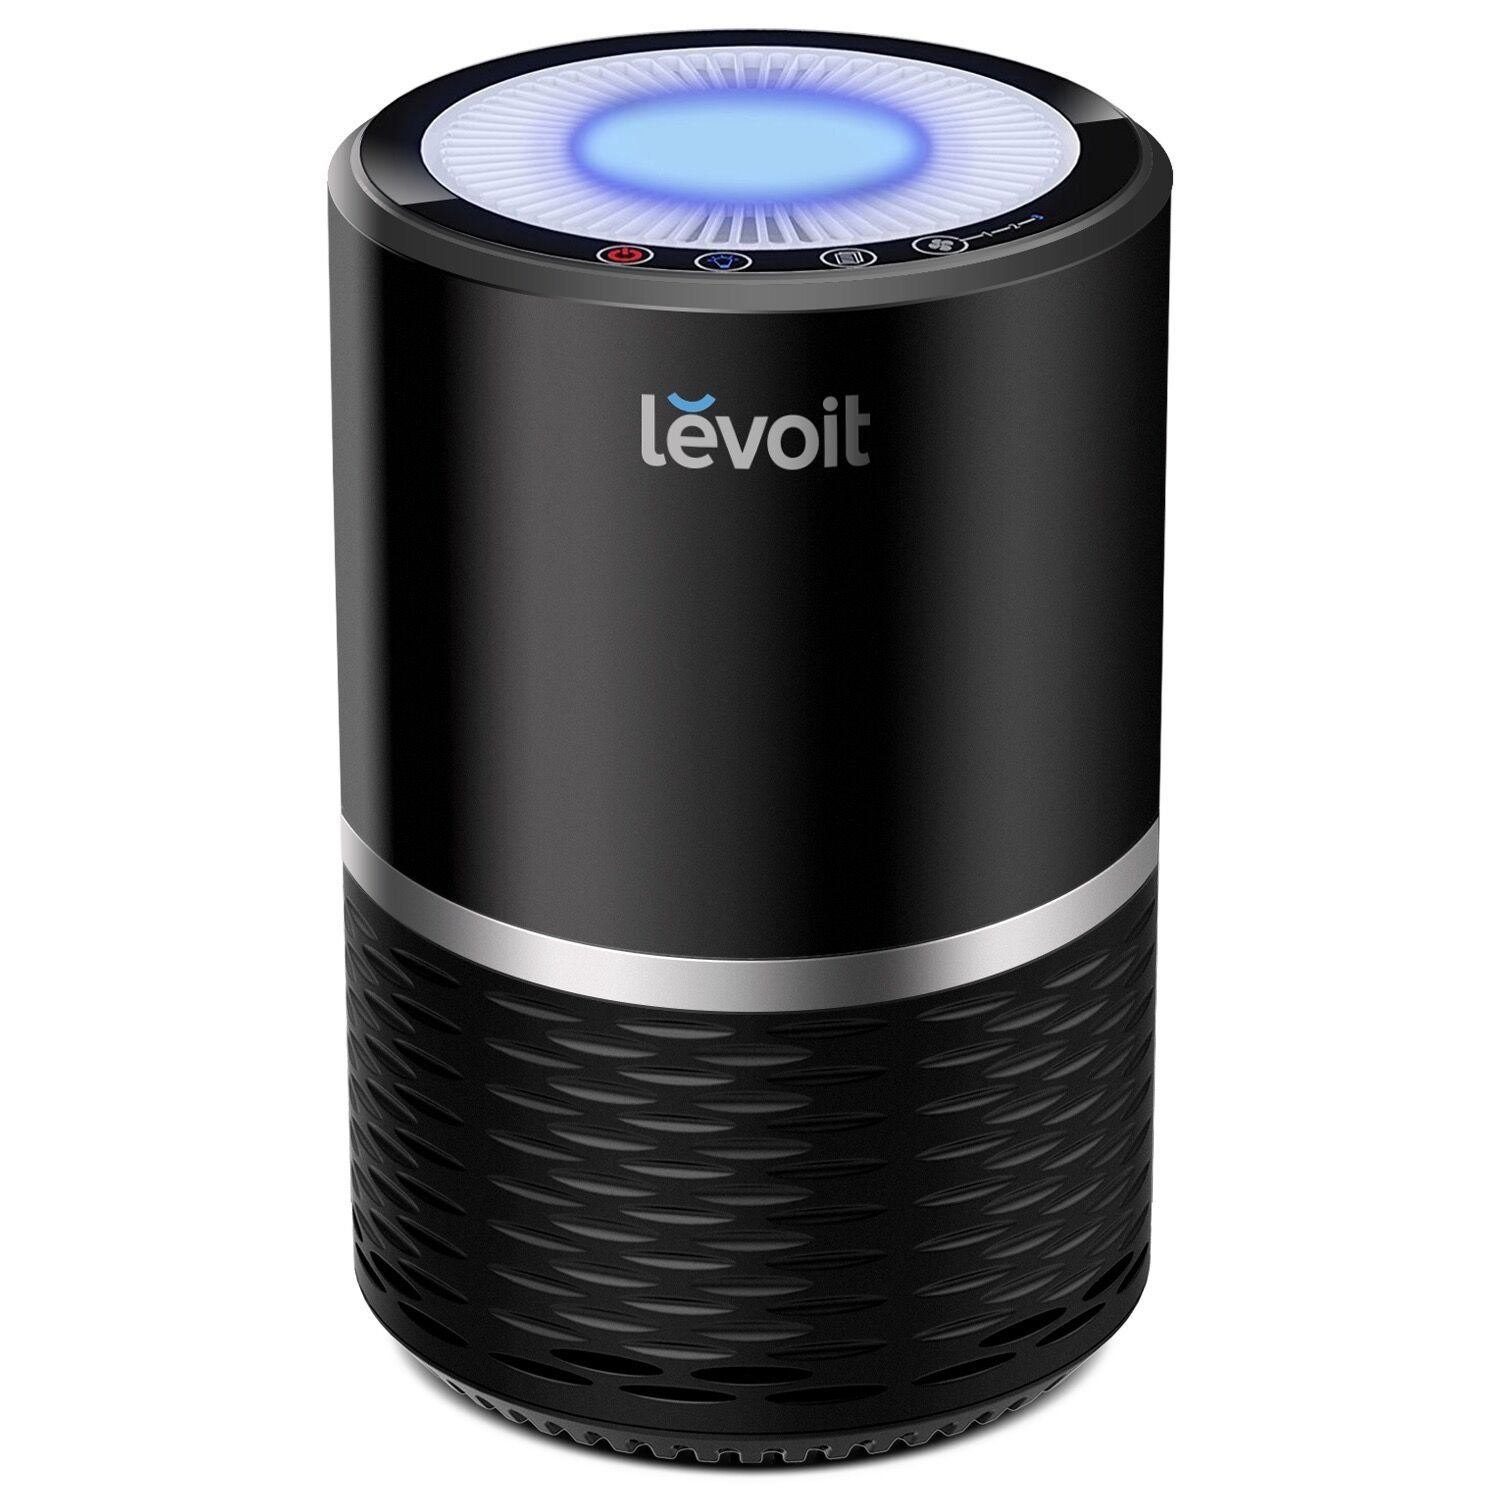 LEVOIT LVH132 Air Purifier Filtration with True HEPA